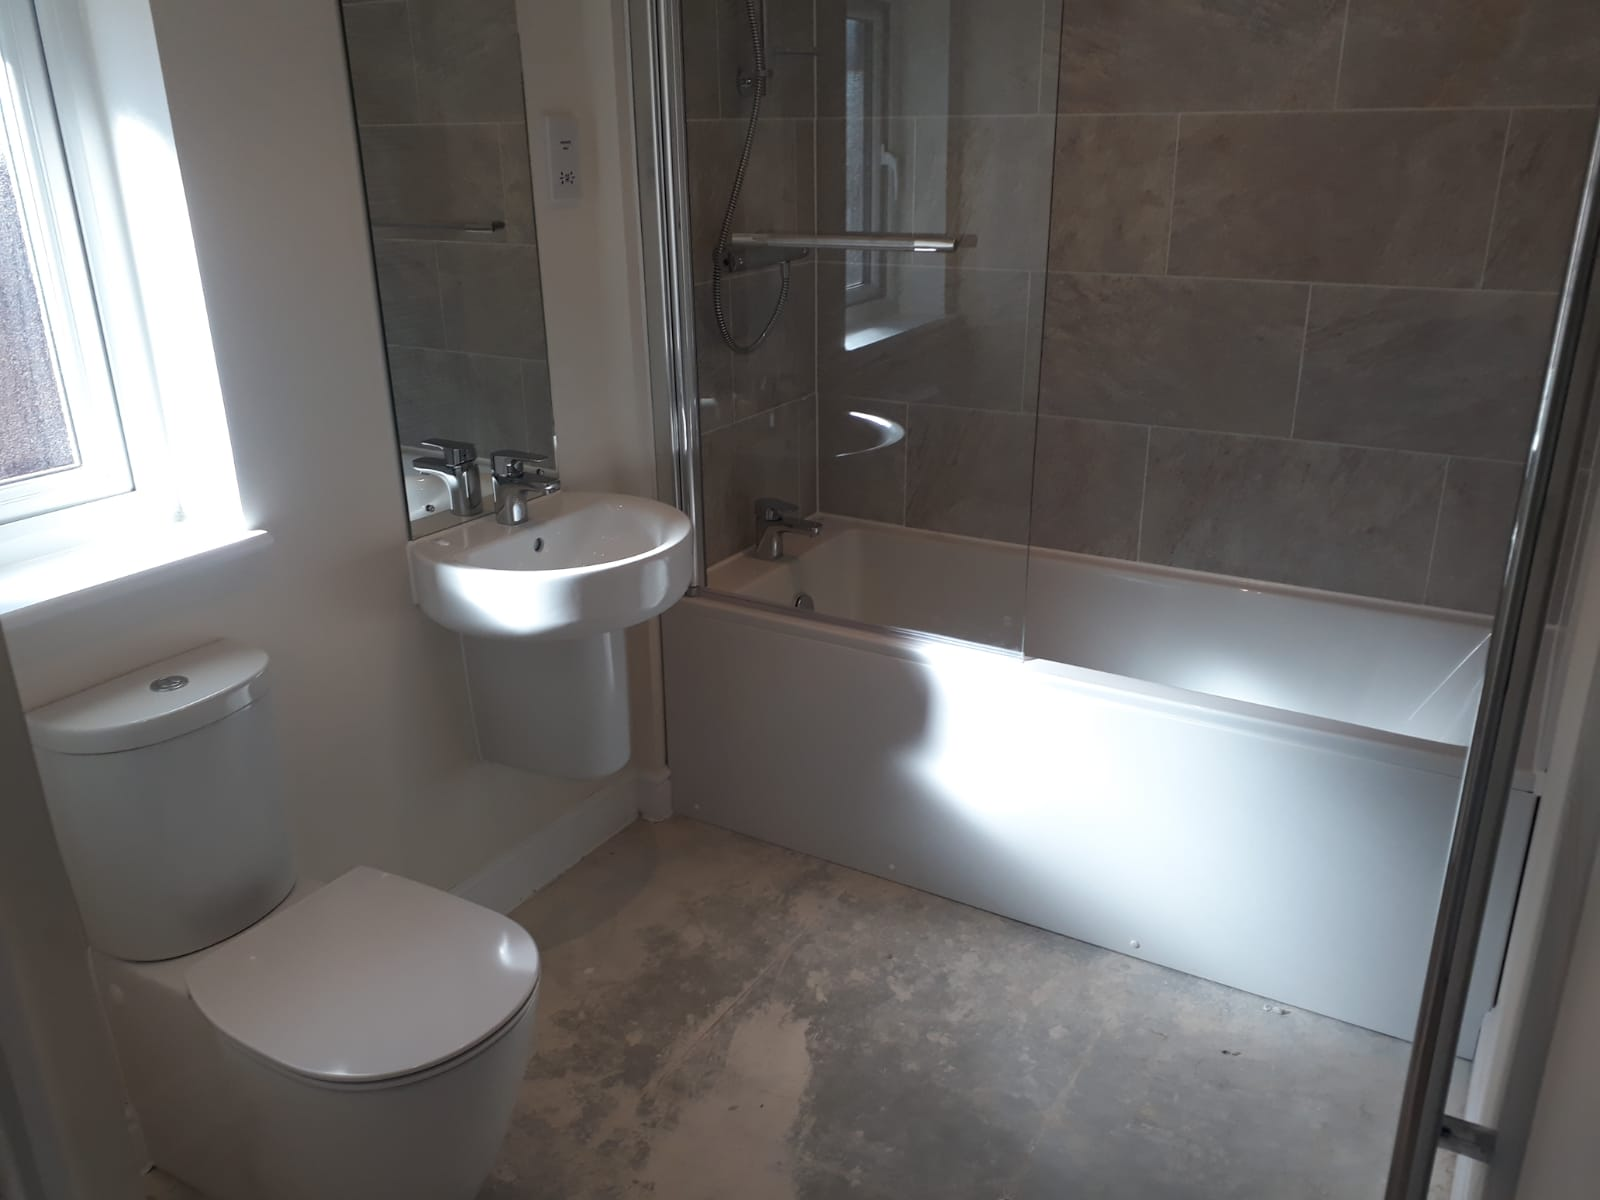 New bathroom with toilet and shower